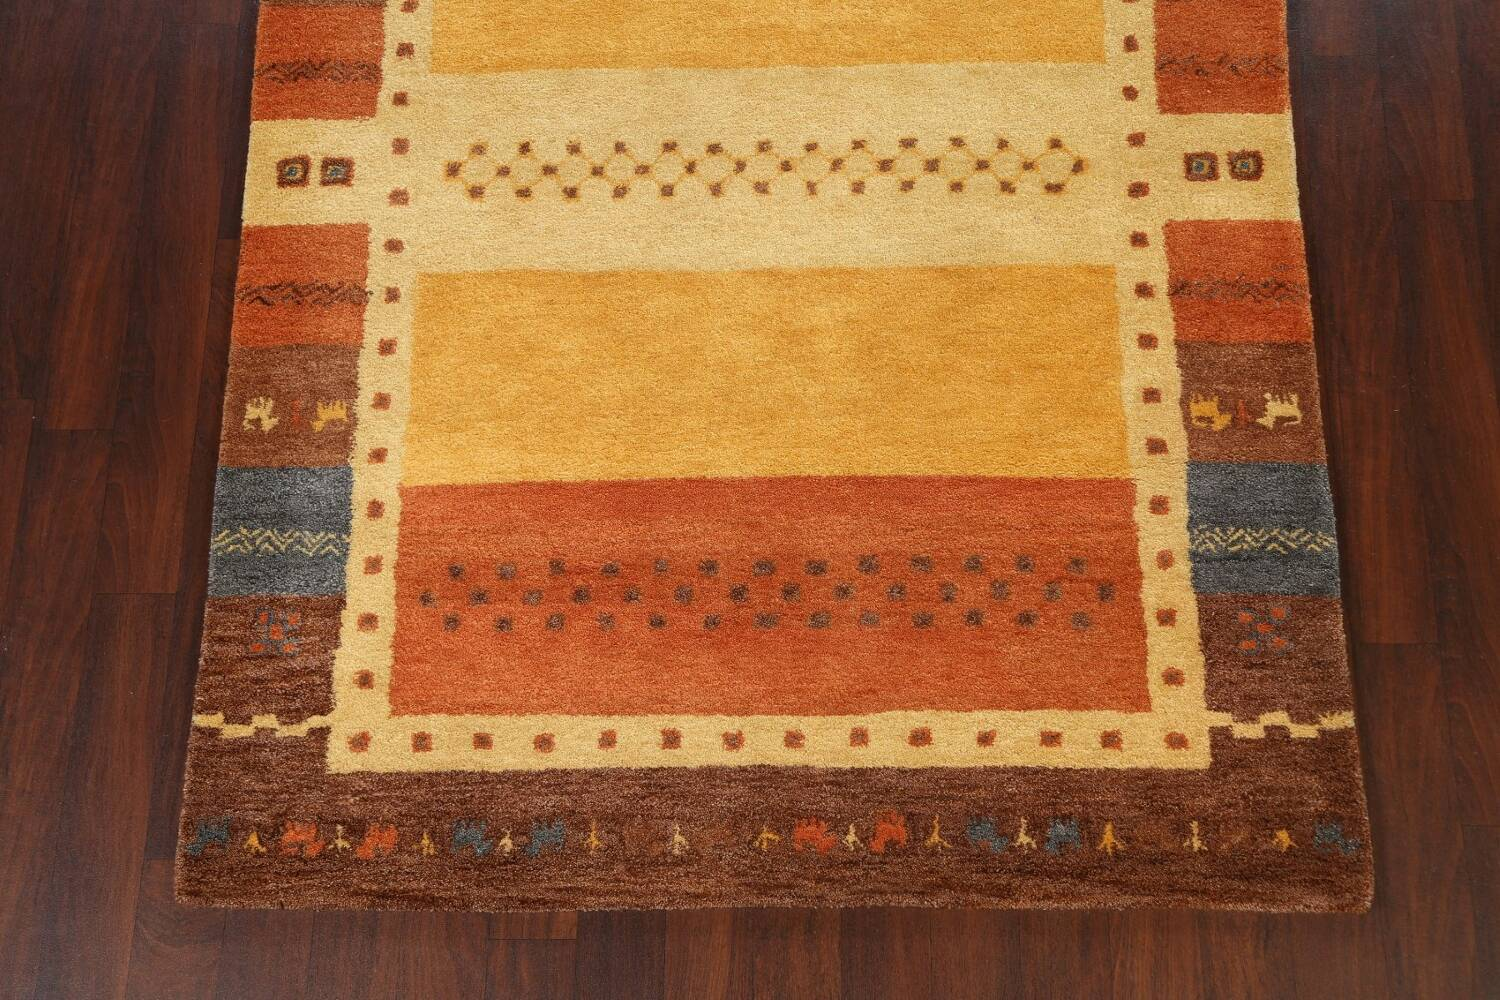 Hand-Tufted Tribal Gabbeh Area Rug 6x8 image 5